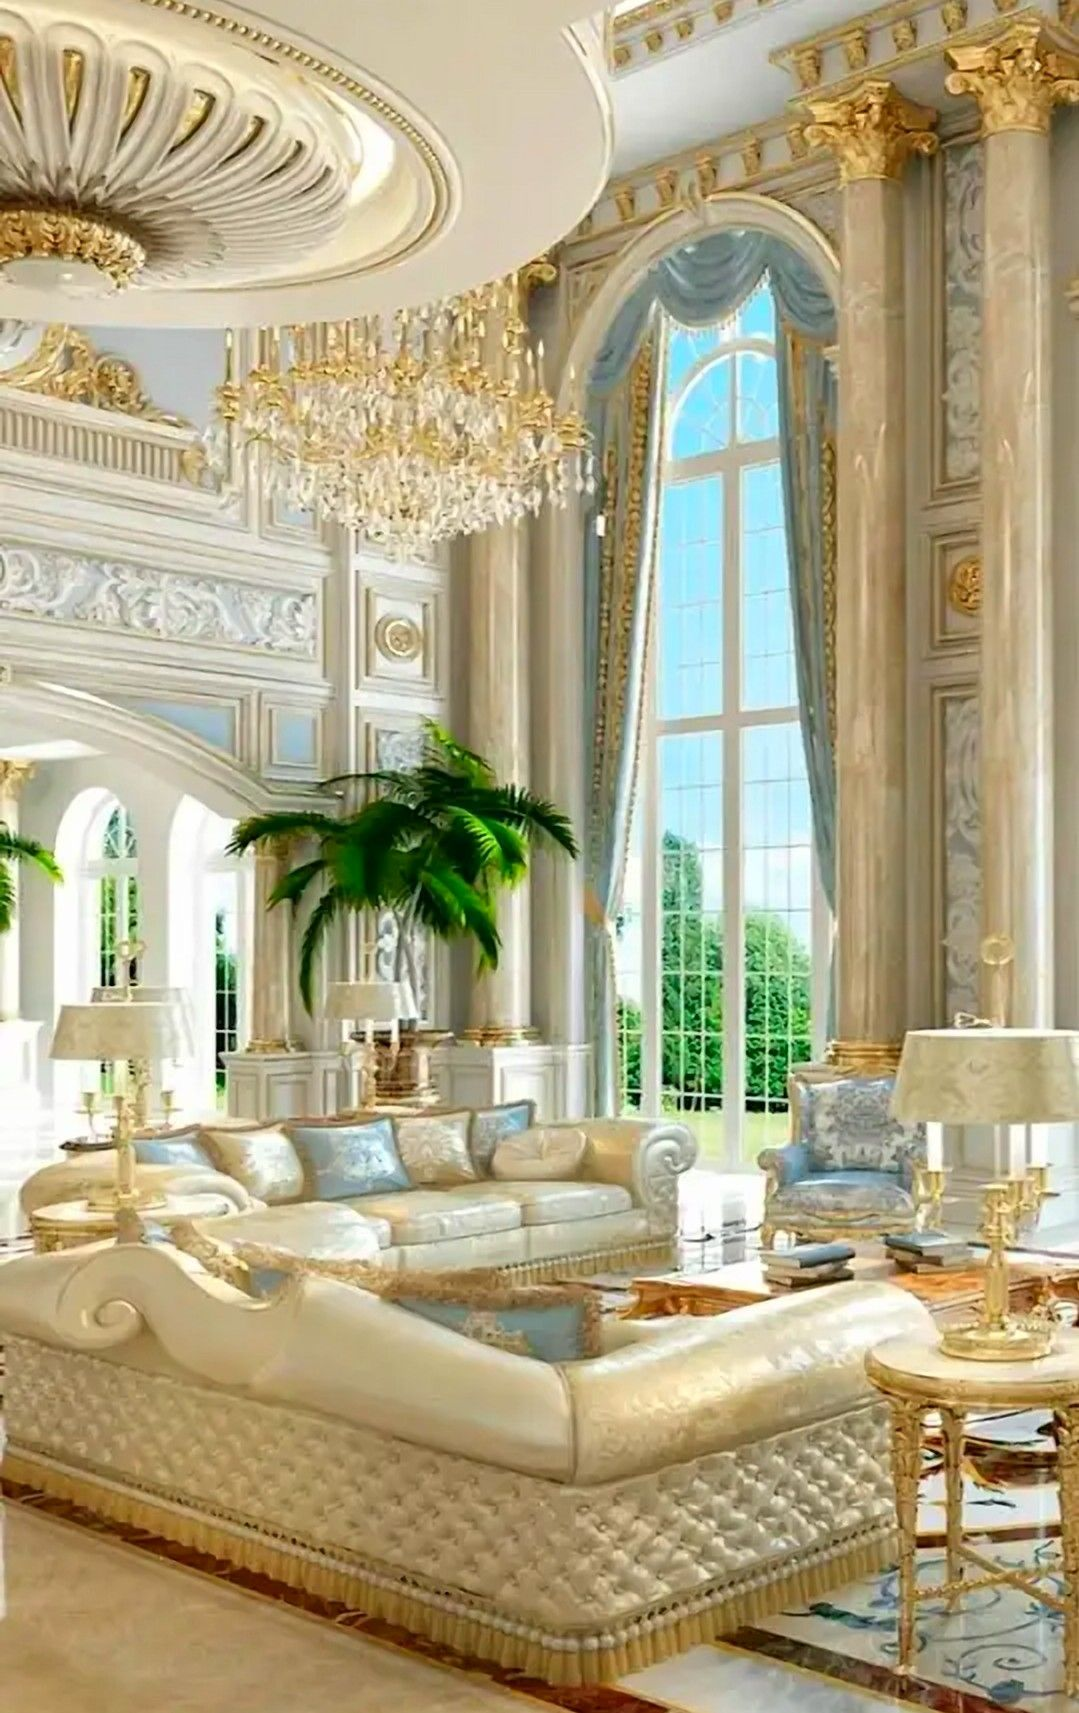 Luxury Home Interior Design Luxury Interior Designer: Simply Beautiful!